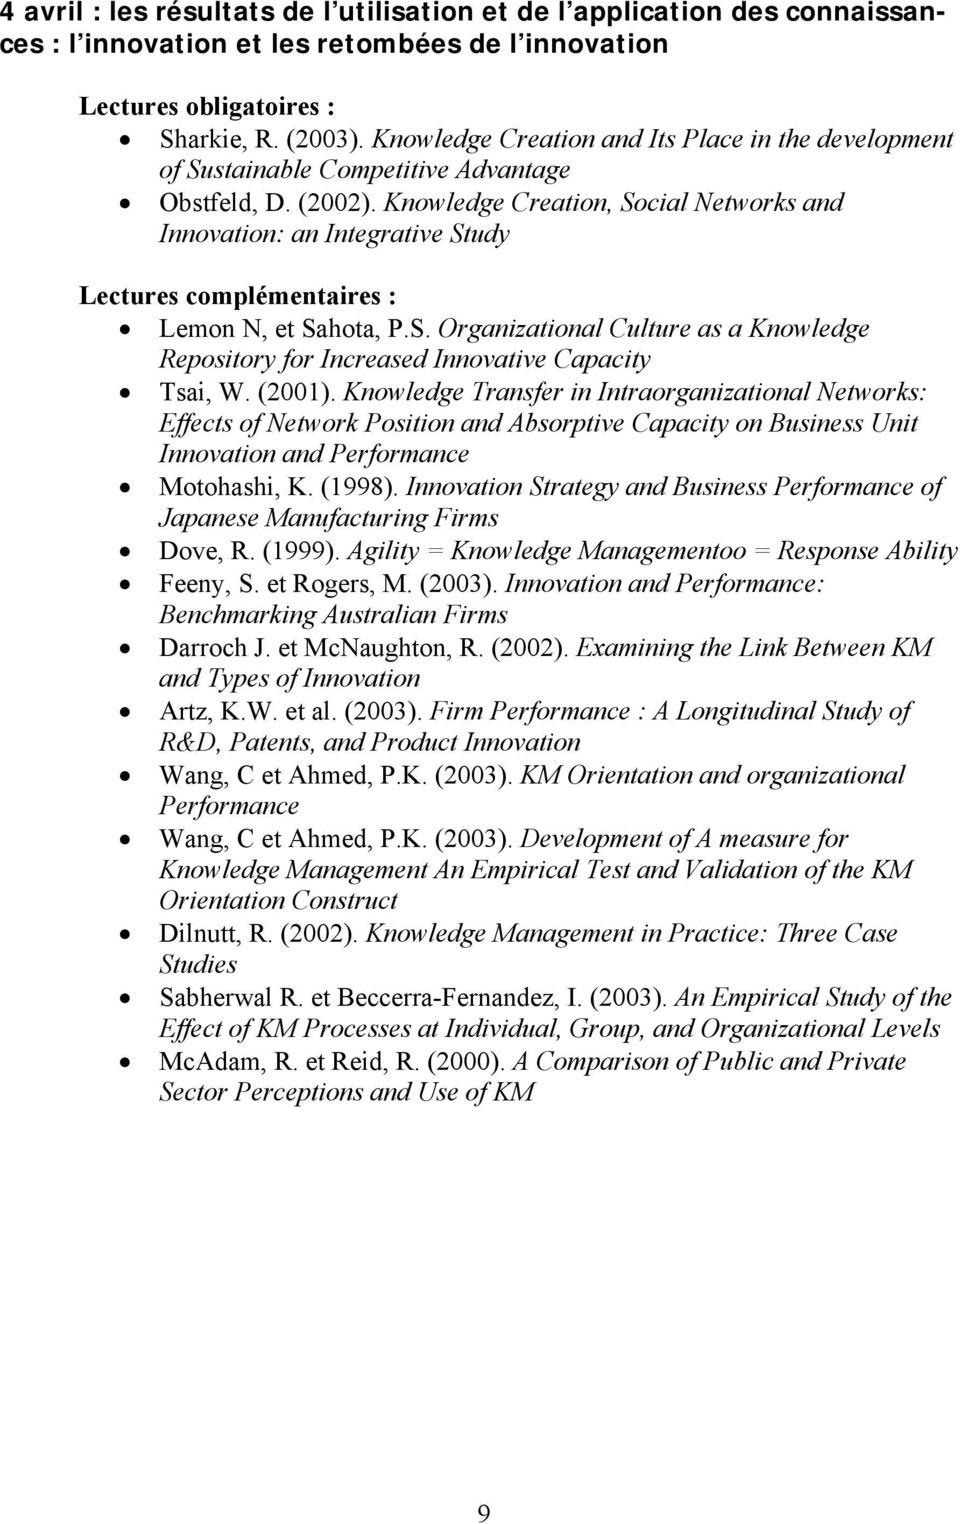 Knowledge Creation, Social Networks and Innovation: an Integrative Study Lemon N, et Sahota, P.S. Organizational Culture as a Knowledge Repository for Increased Innovative Capacity Tsai, W. (2001).